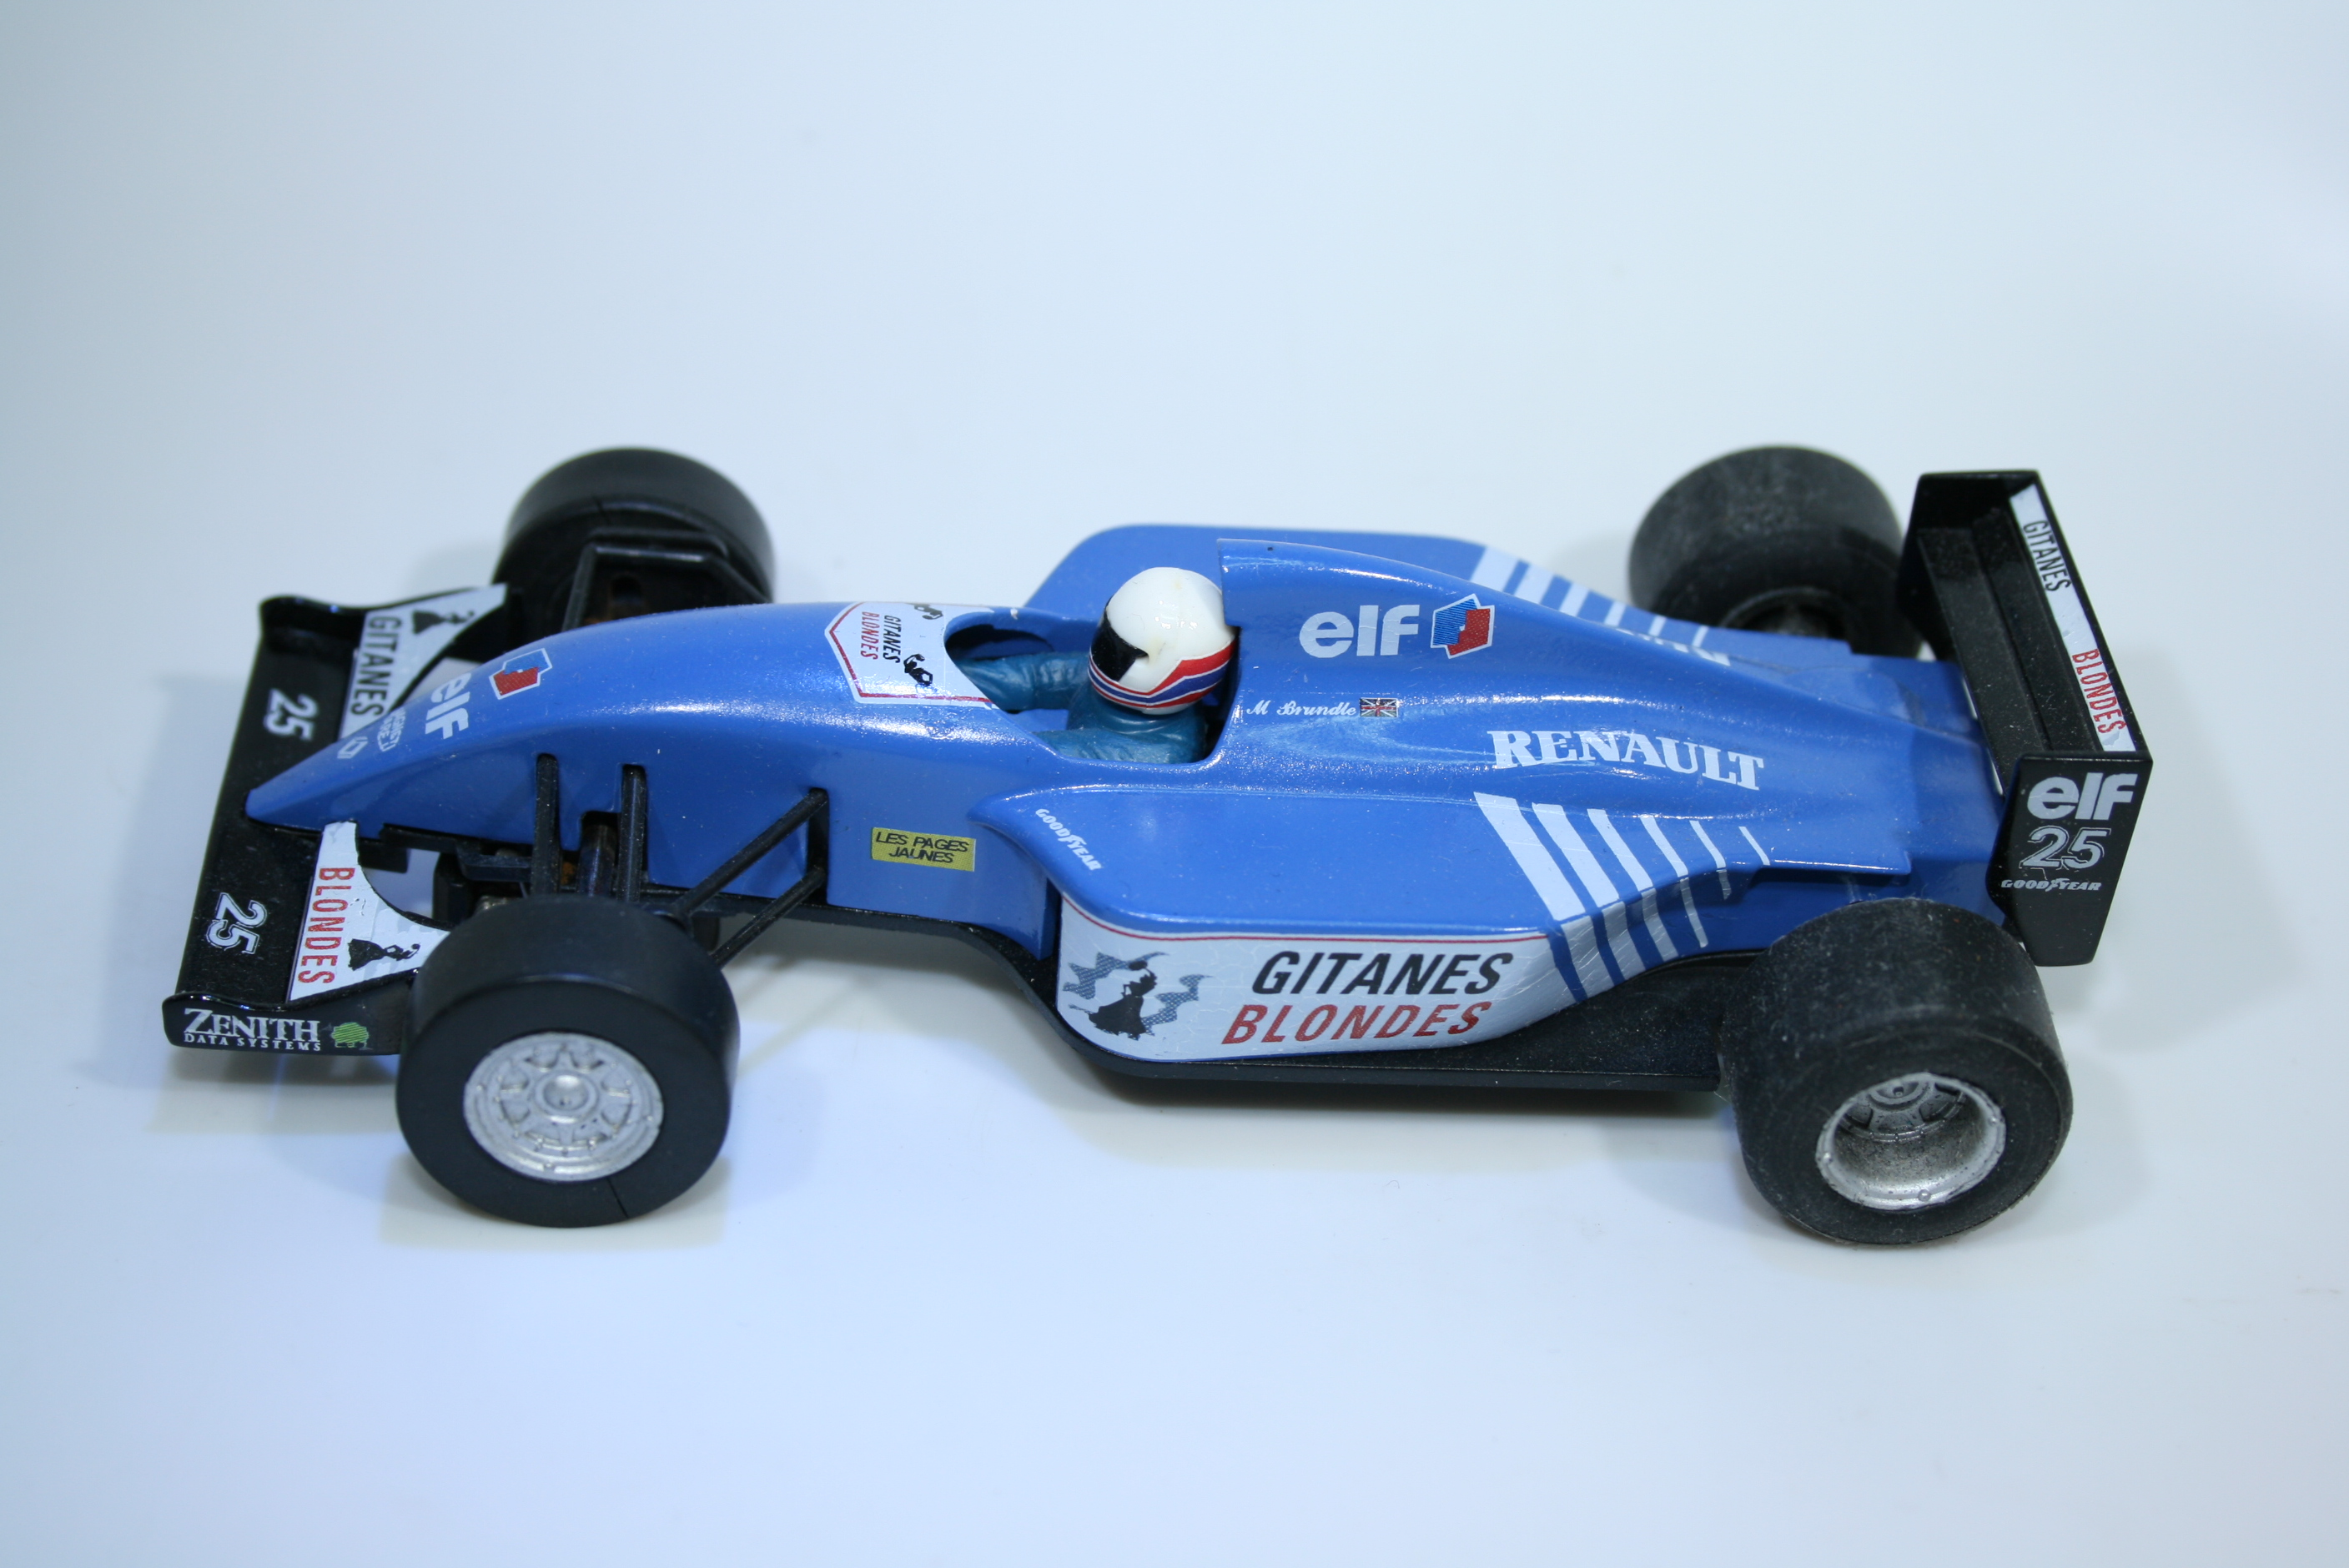 1413 Ligier JS39B M Brundle 1993 Scalextric Relivery